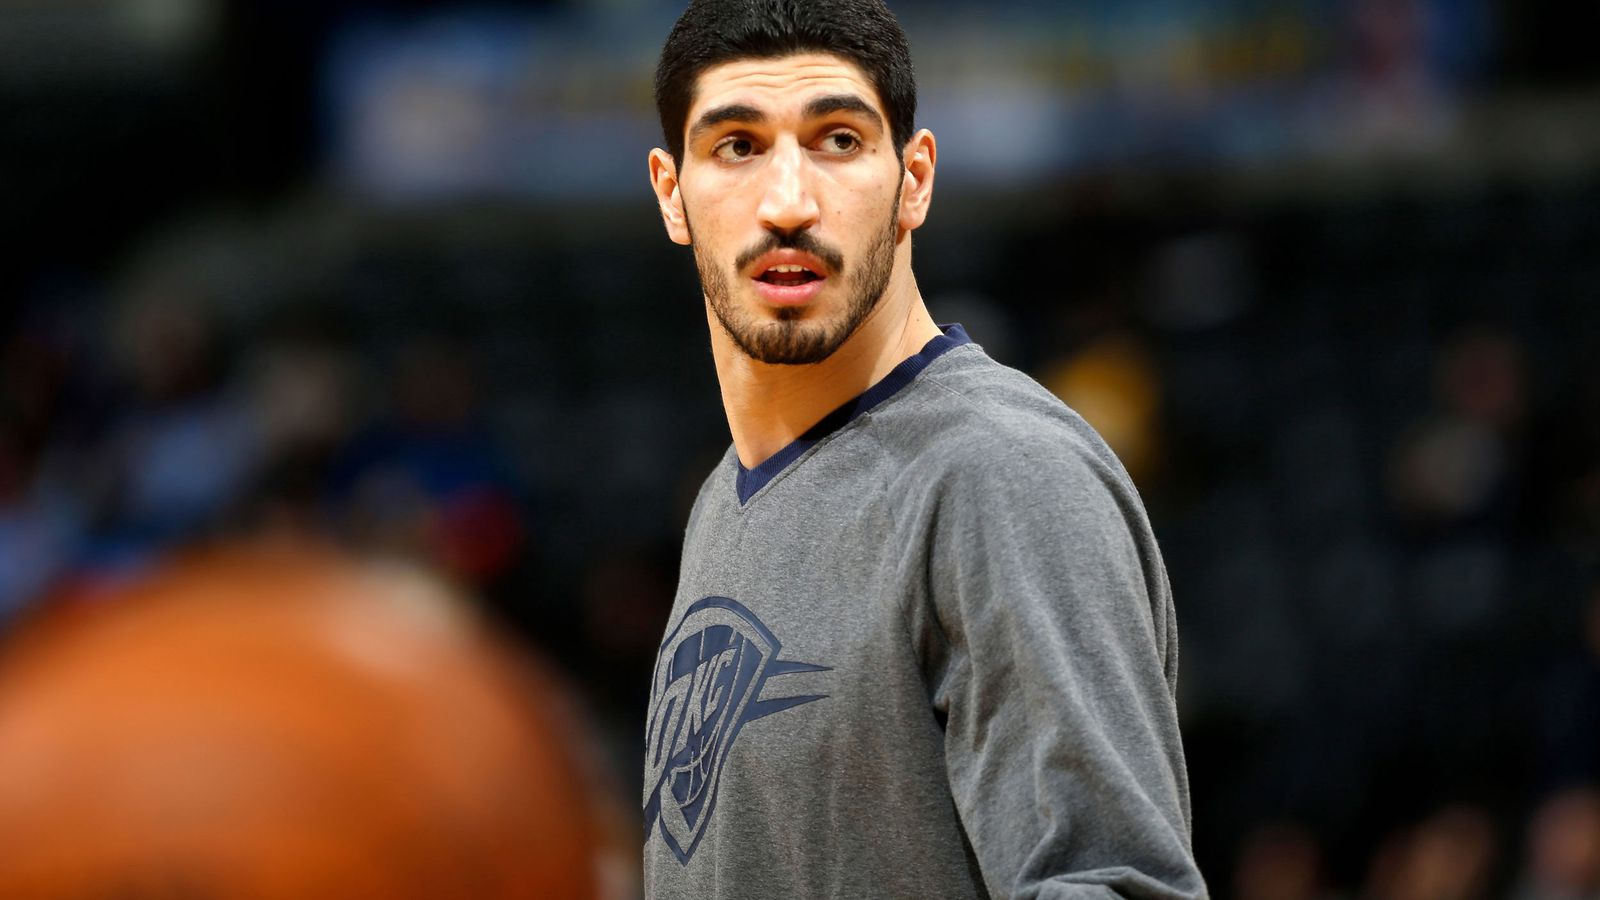 enes kanter and the nba model of activism